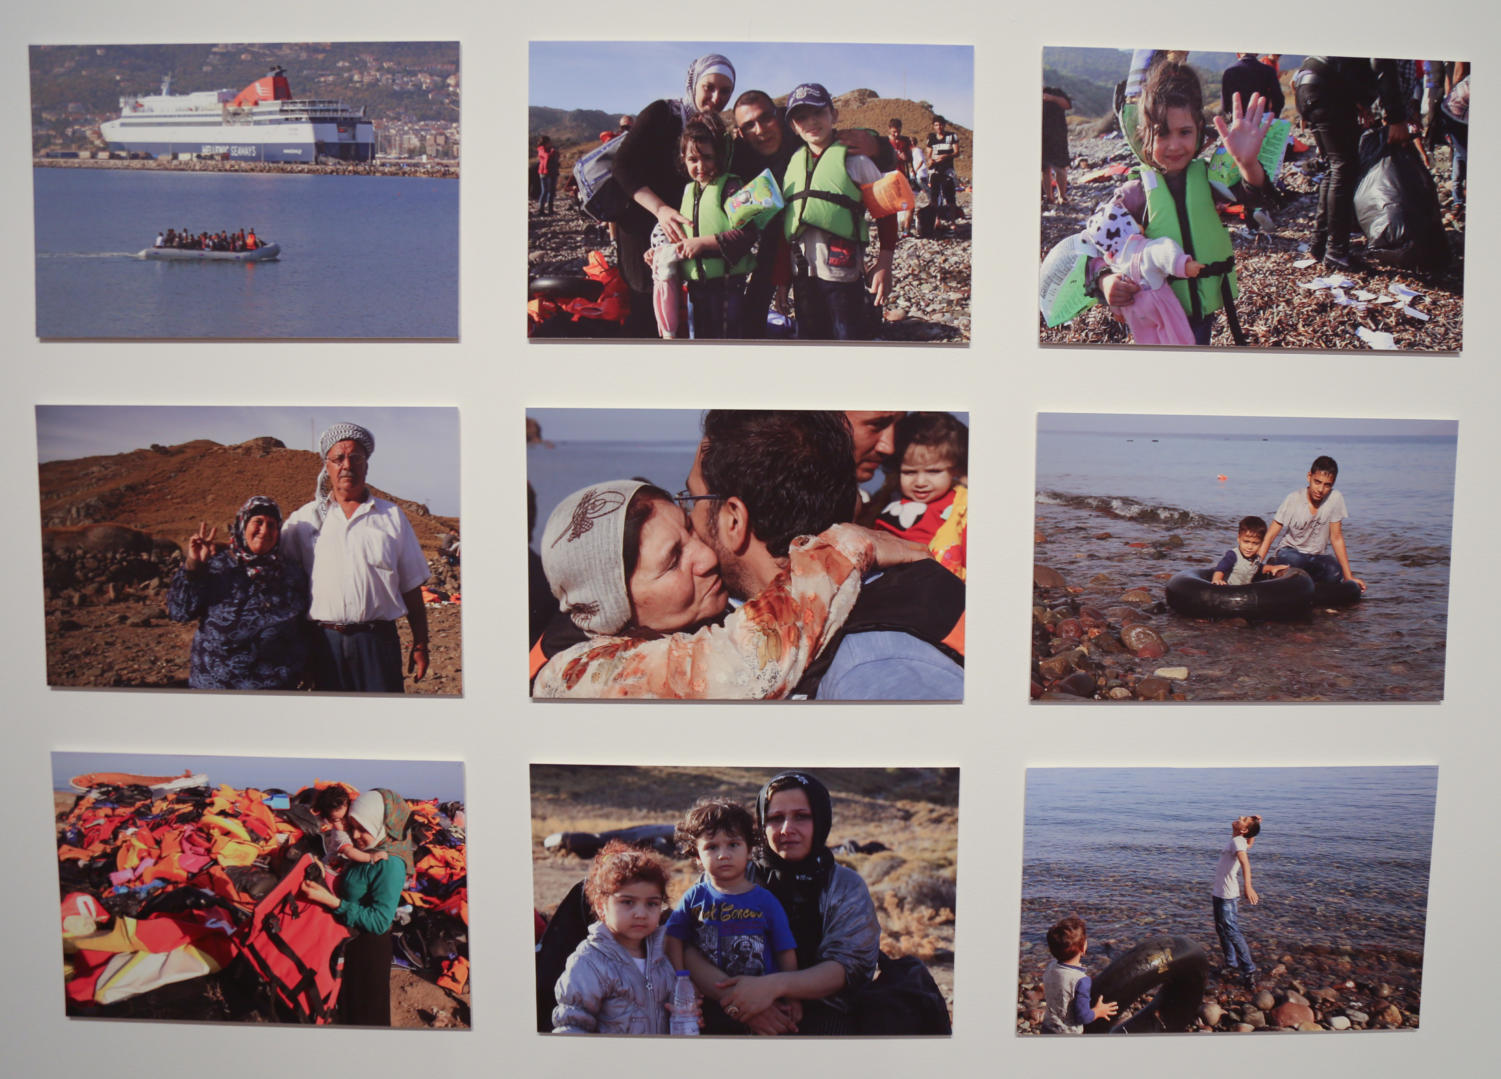 This+display+features+photographs+of+Syrian+families+as+they+arrive+on+the+shore+of+Lesvos.%0A